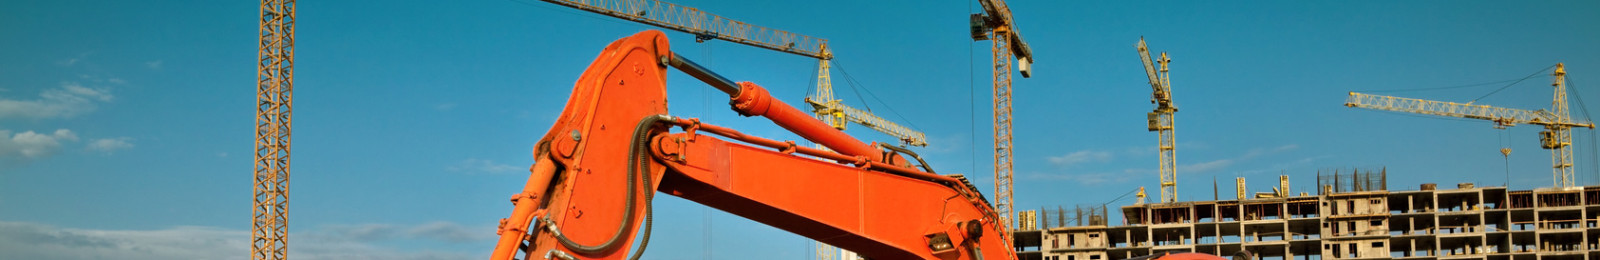 Public Construction and Procurementpage banner image